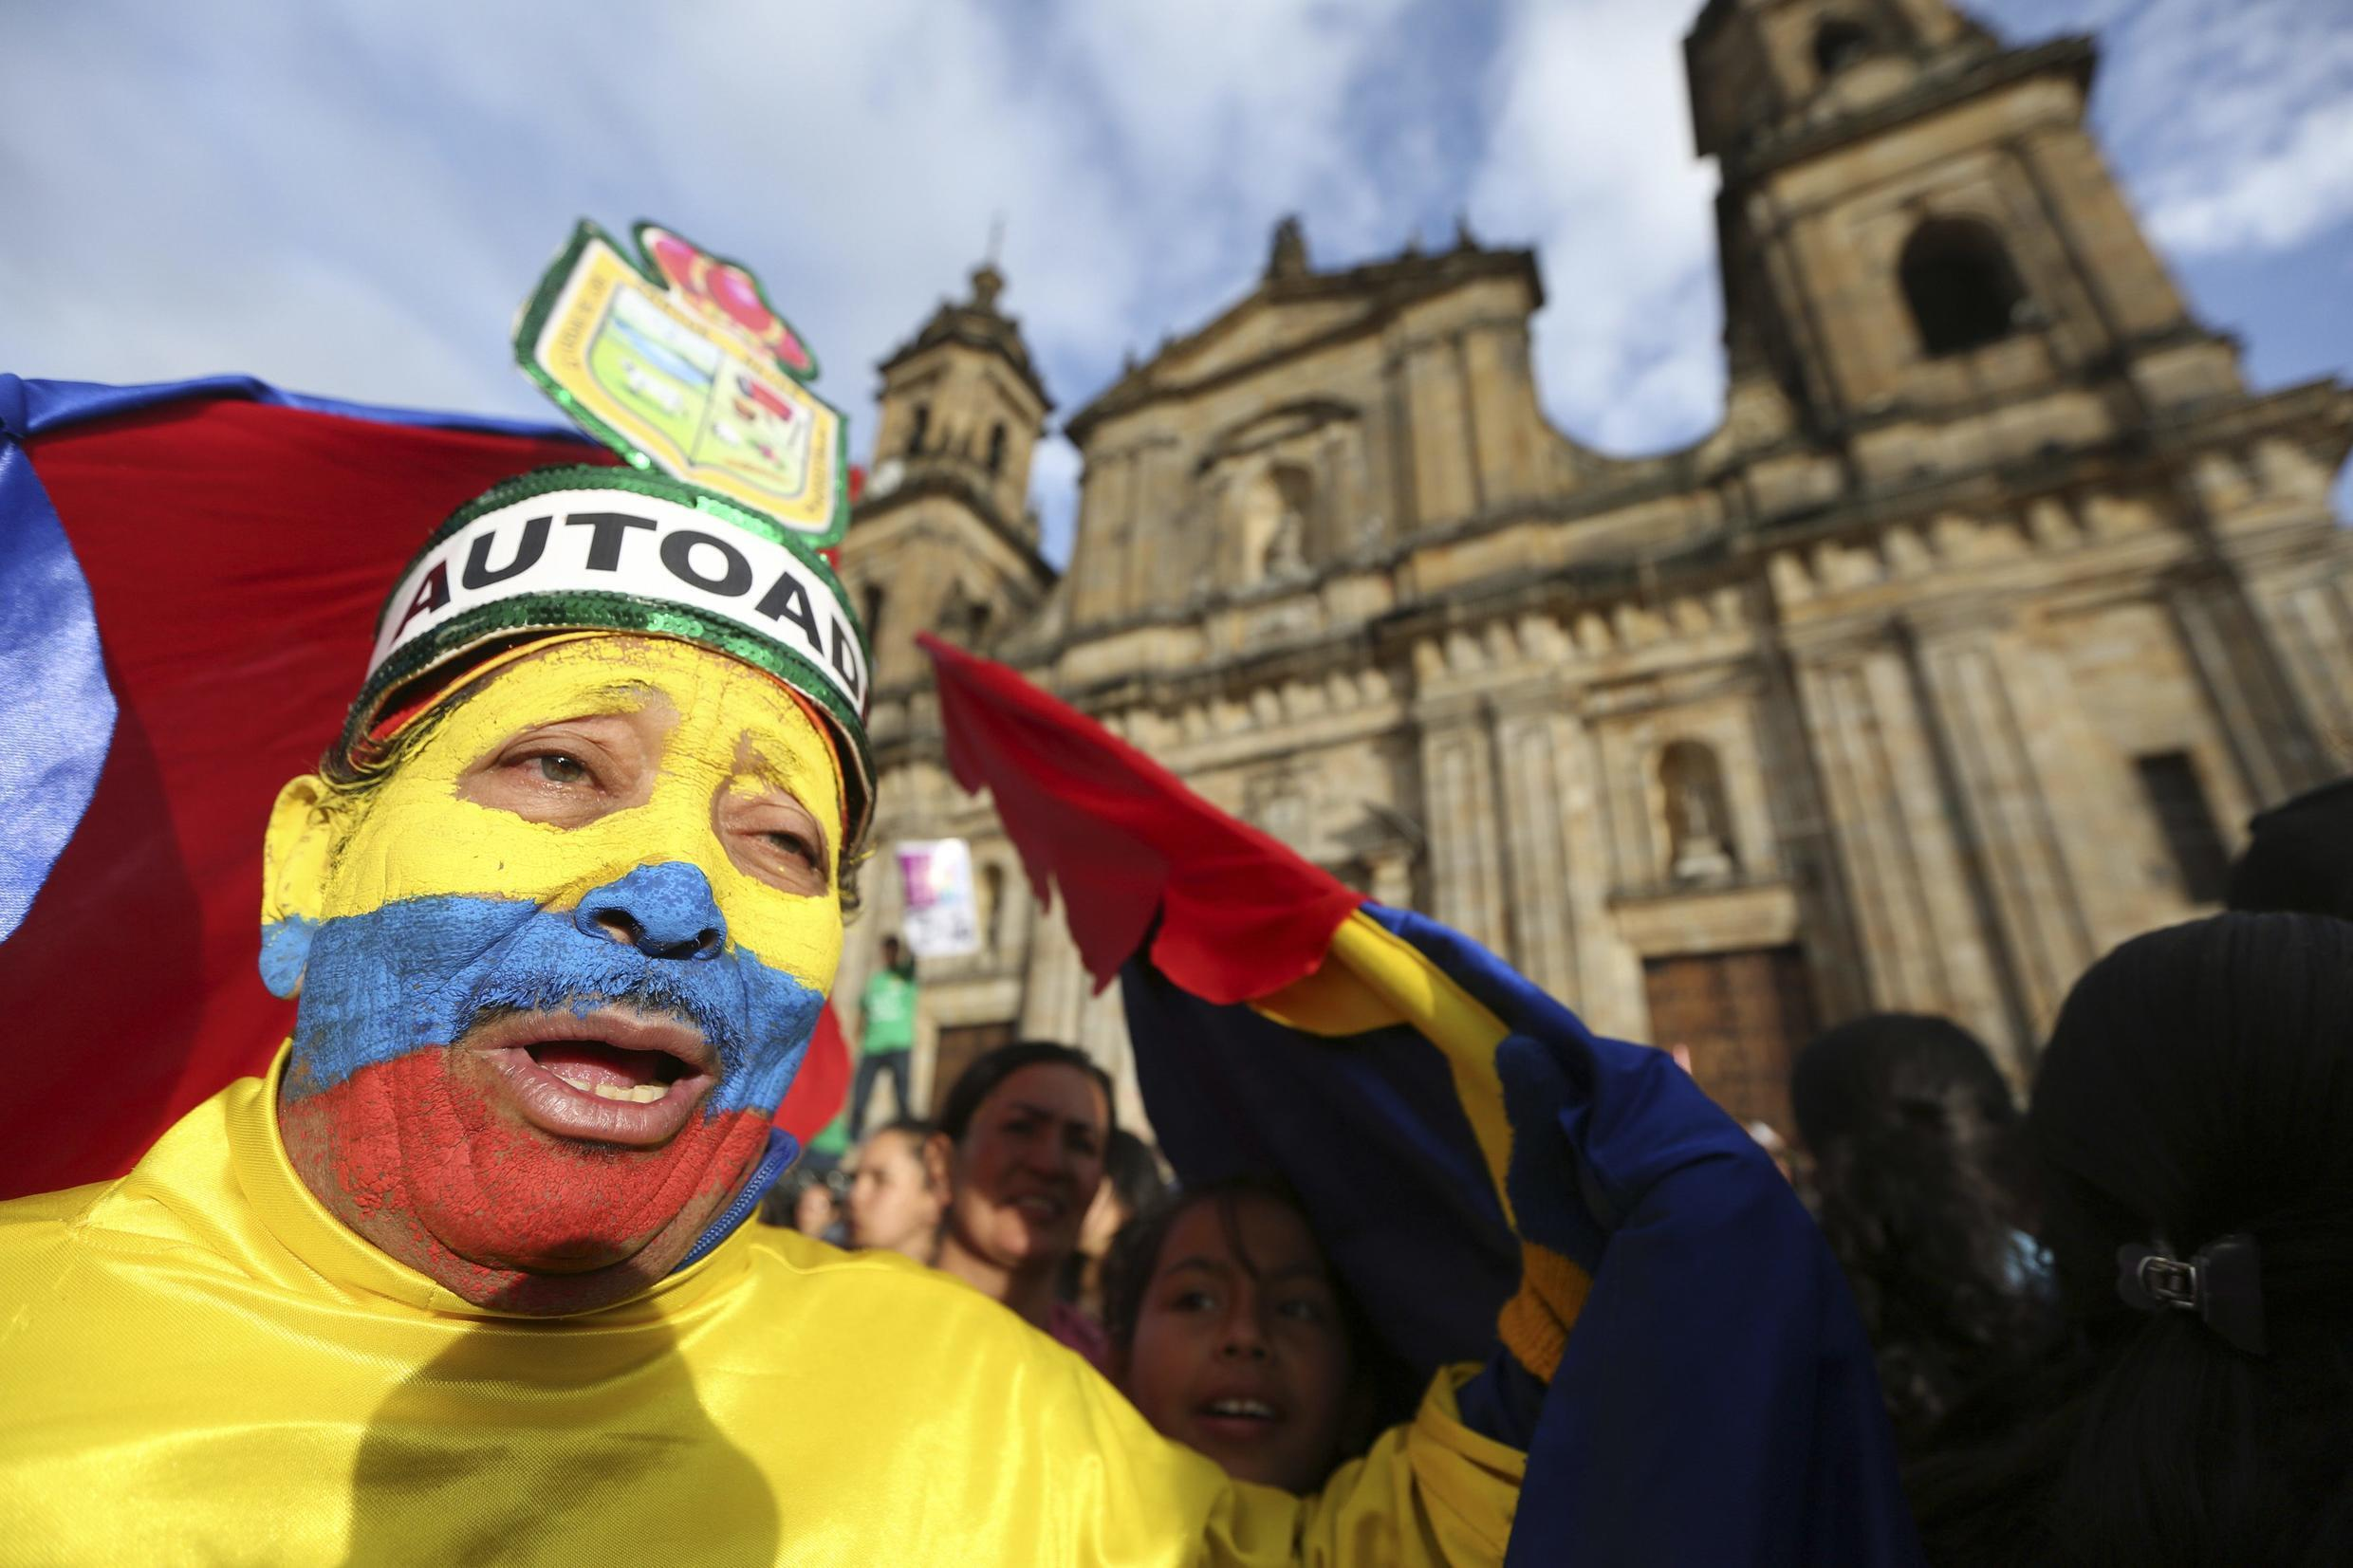 Demonstrators protest against a decision by Colombia's Attorney General Alejandro Ordonez to remove Bogota's Mayor Gustavo Petro from his post, 13 December 2013.